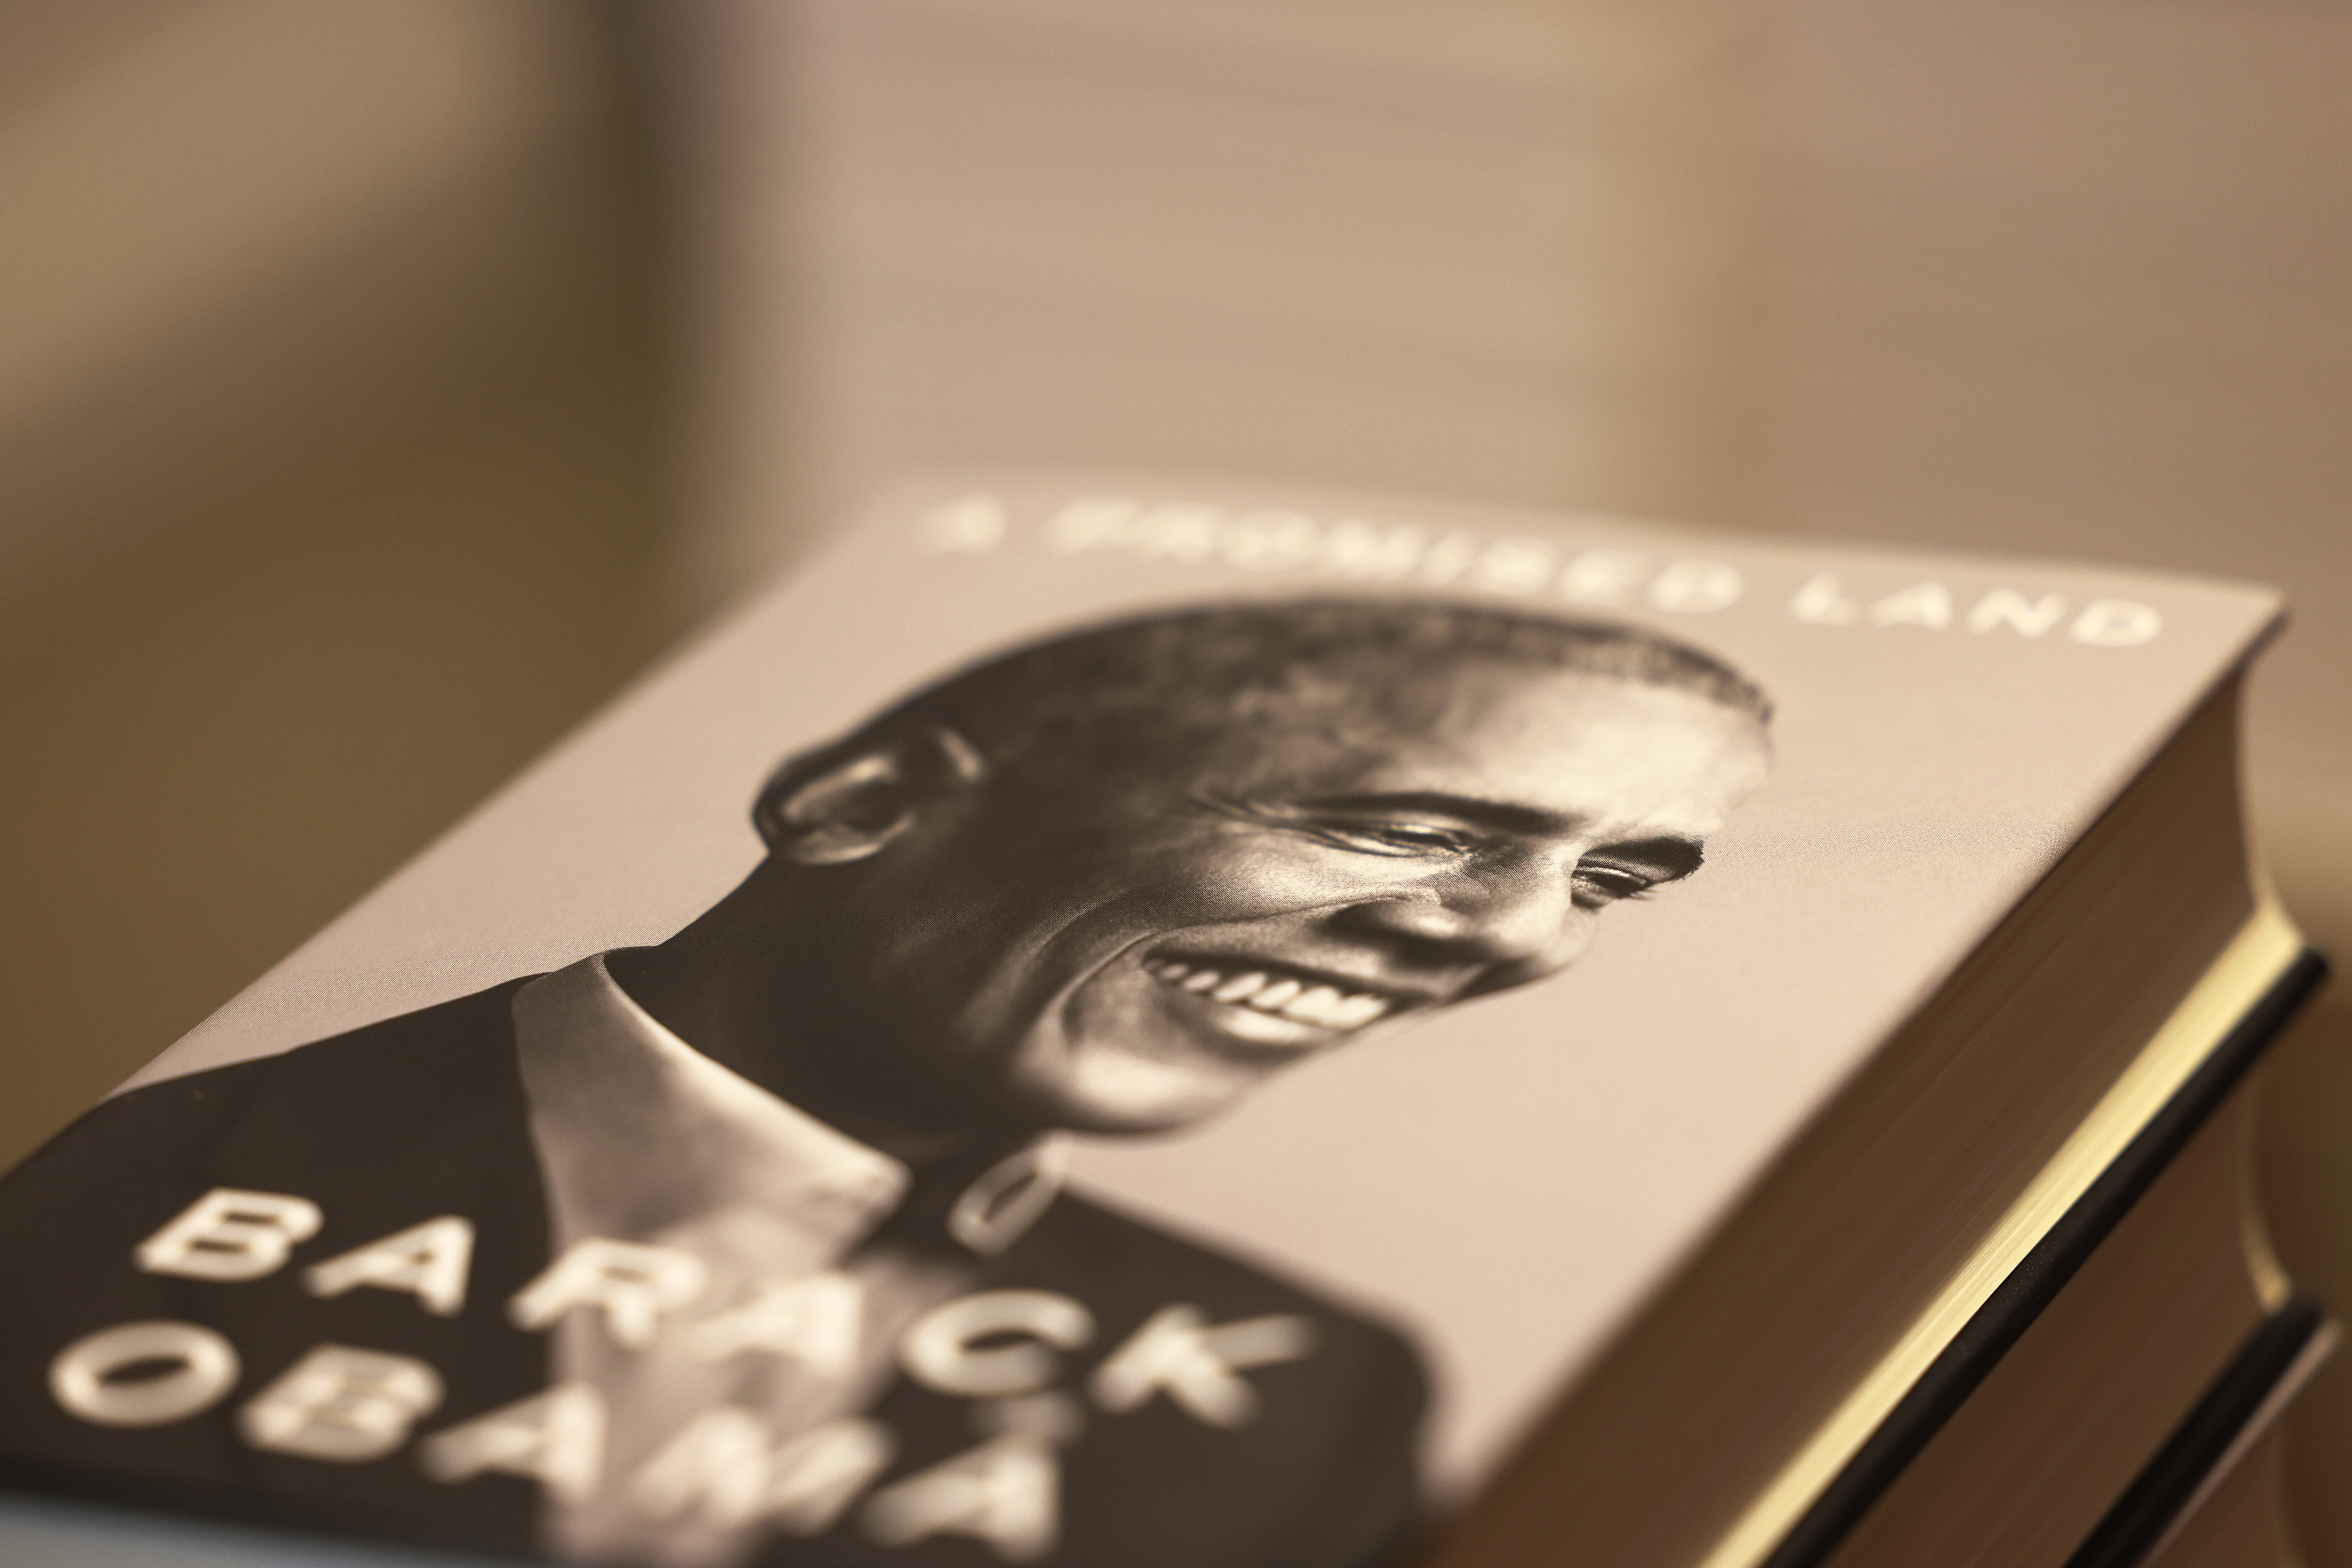 New York City - Nov. 17: Former President Barack Obama's new memoir is seen on display at the Greenlight Bookstore in Brooklyn. (Photo by Michael M. Santiago/Getty Images)